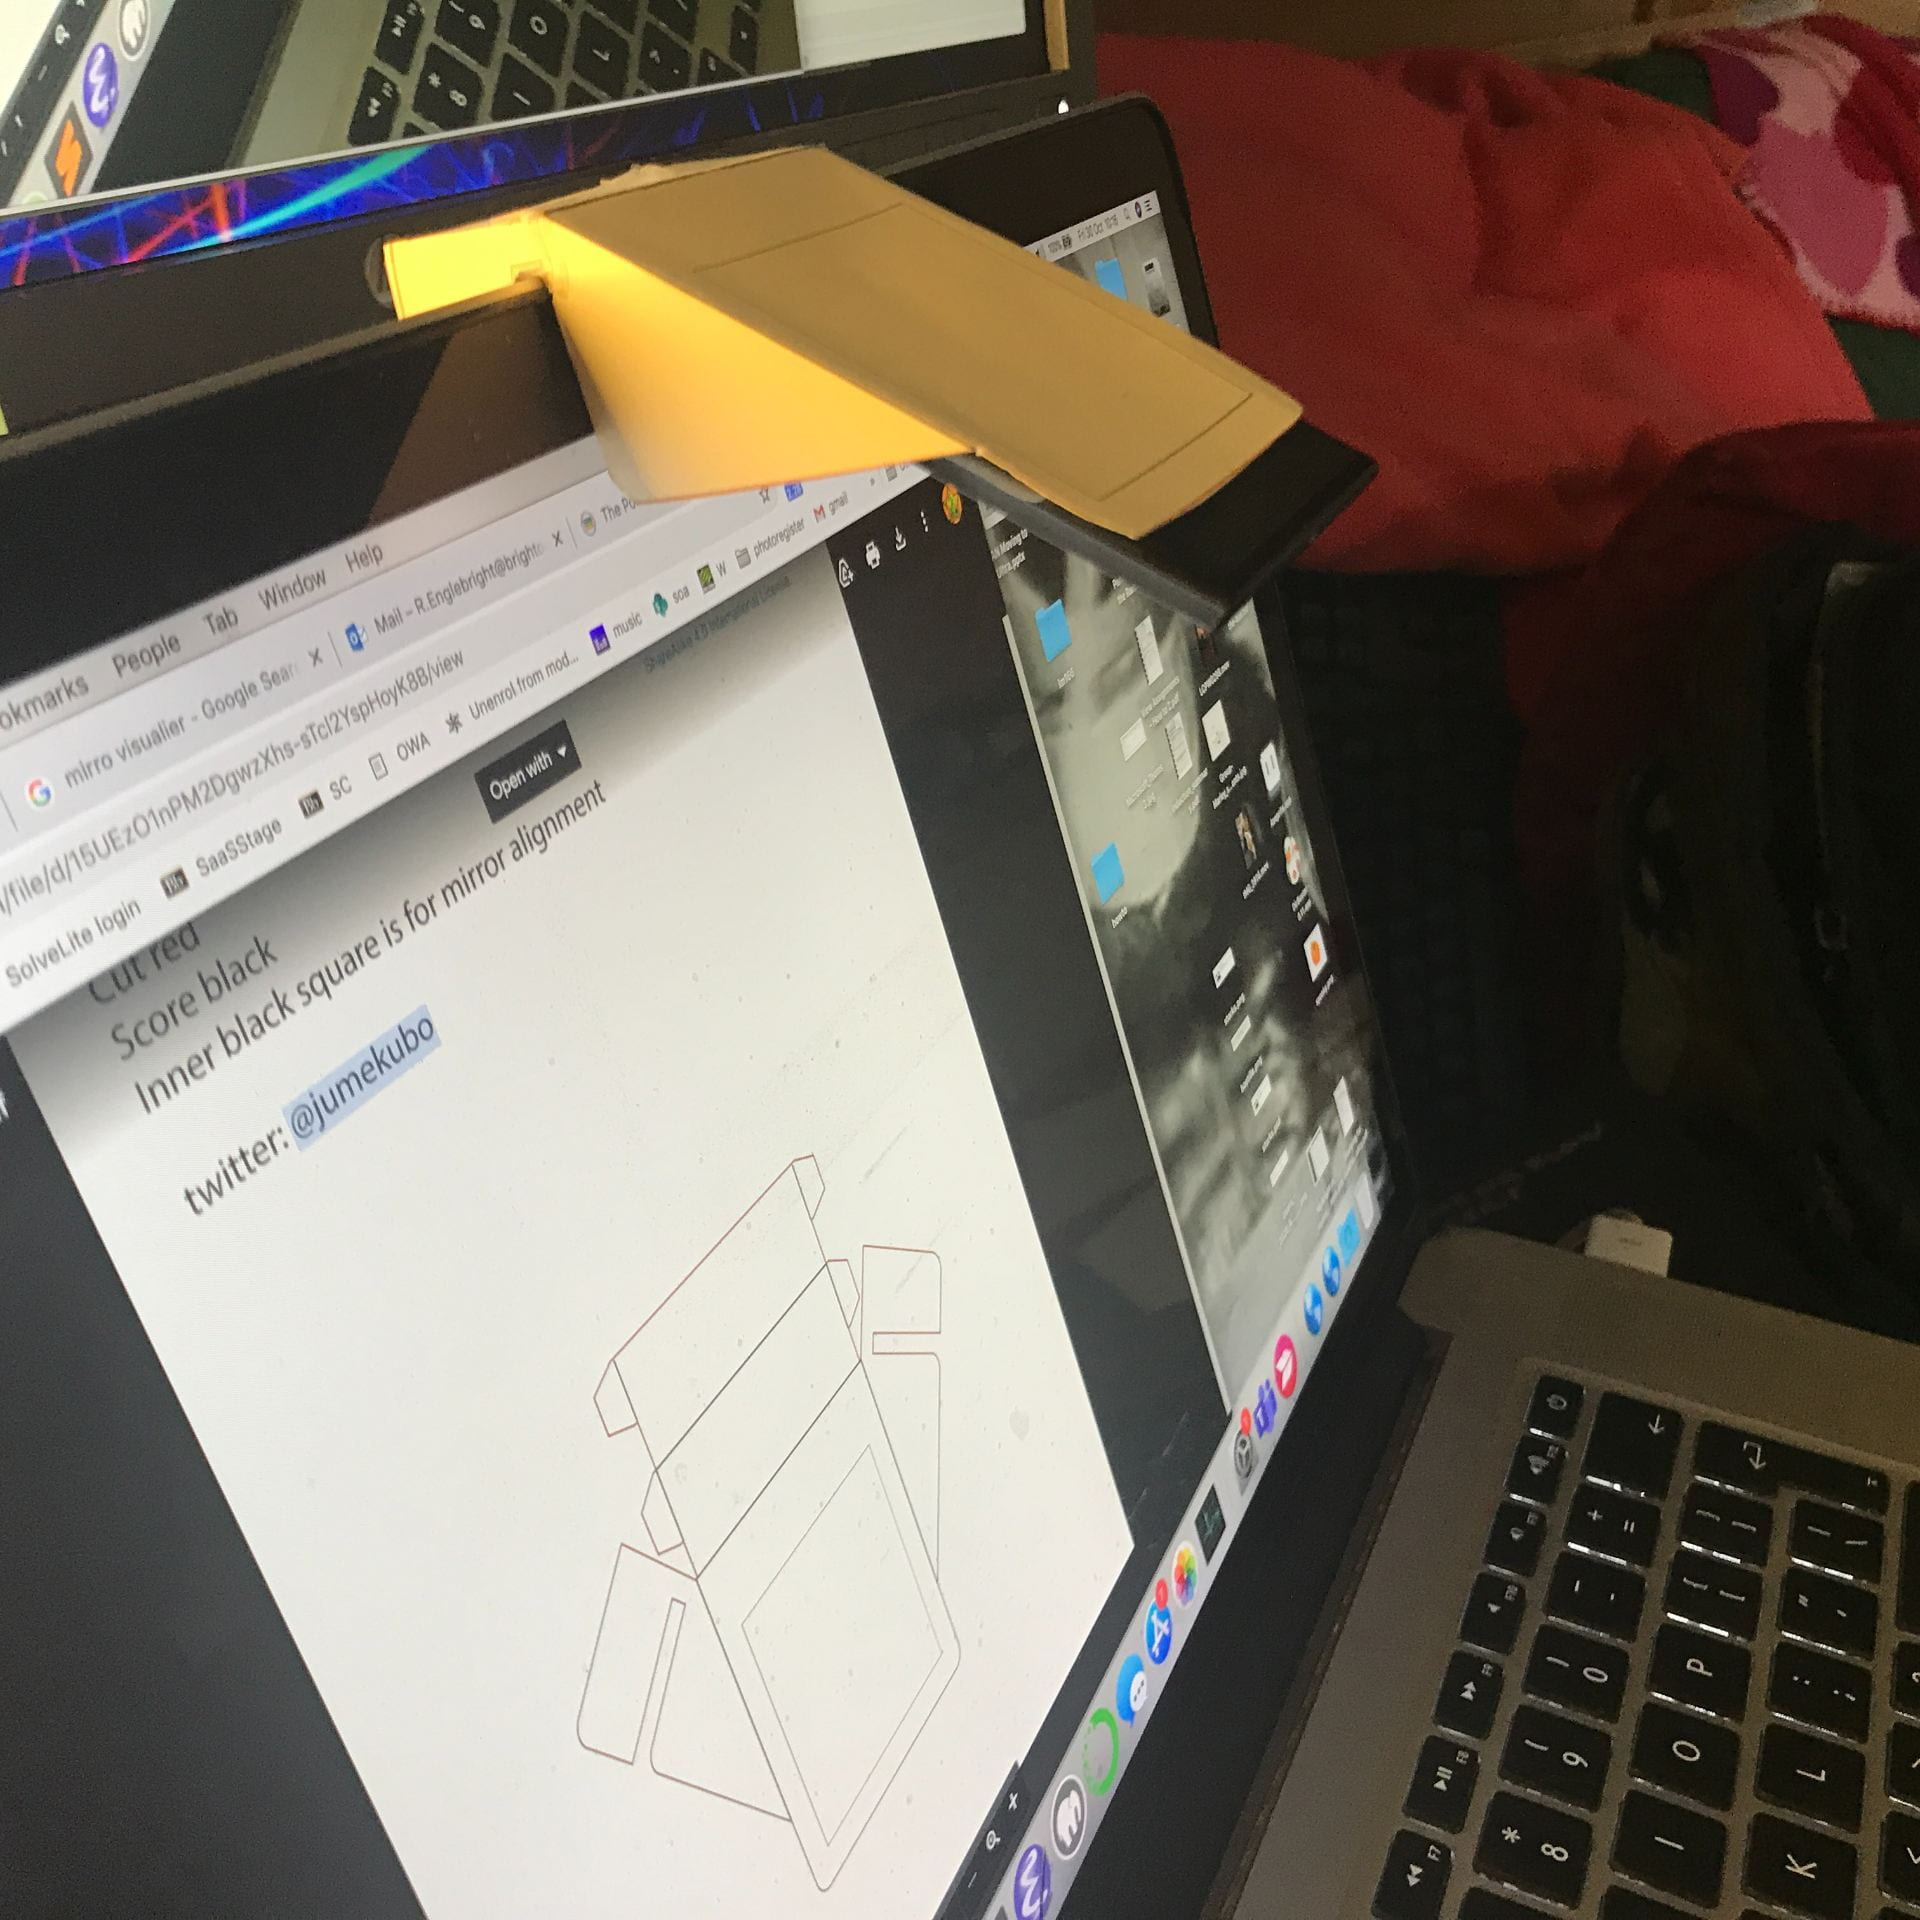 use your laptop webcam as a visualiser with a mirror some cardboard and  sellotape | how to